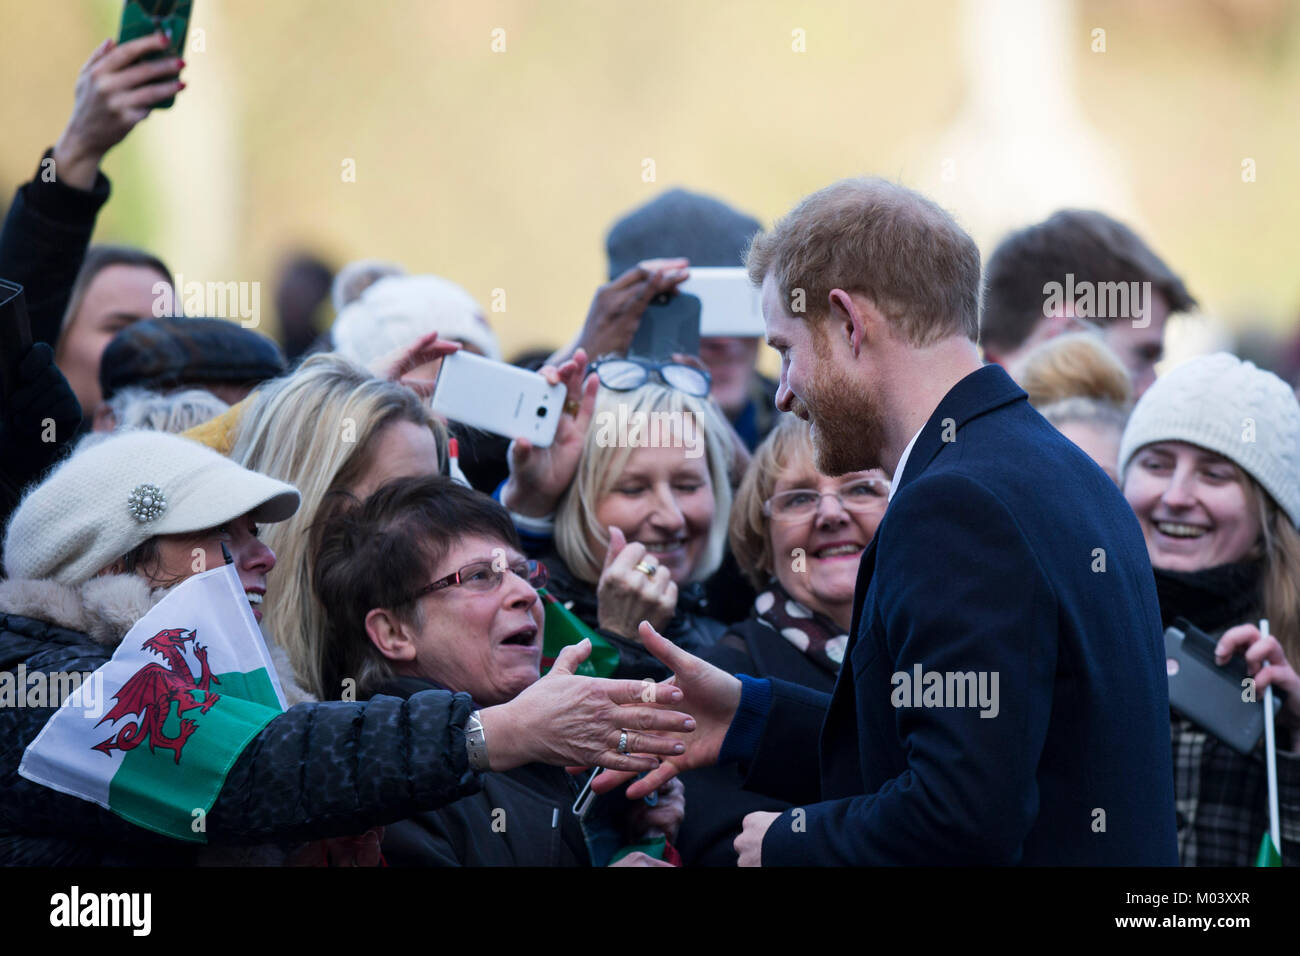 Cardiff, Wales, UK, January 18th 2018. Prince Harry greets the crowds on his arrival at Cardiff Castle. Credit: - Stock Image